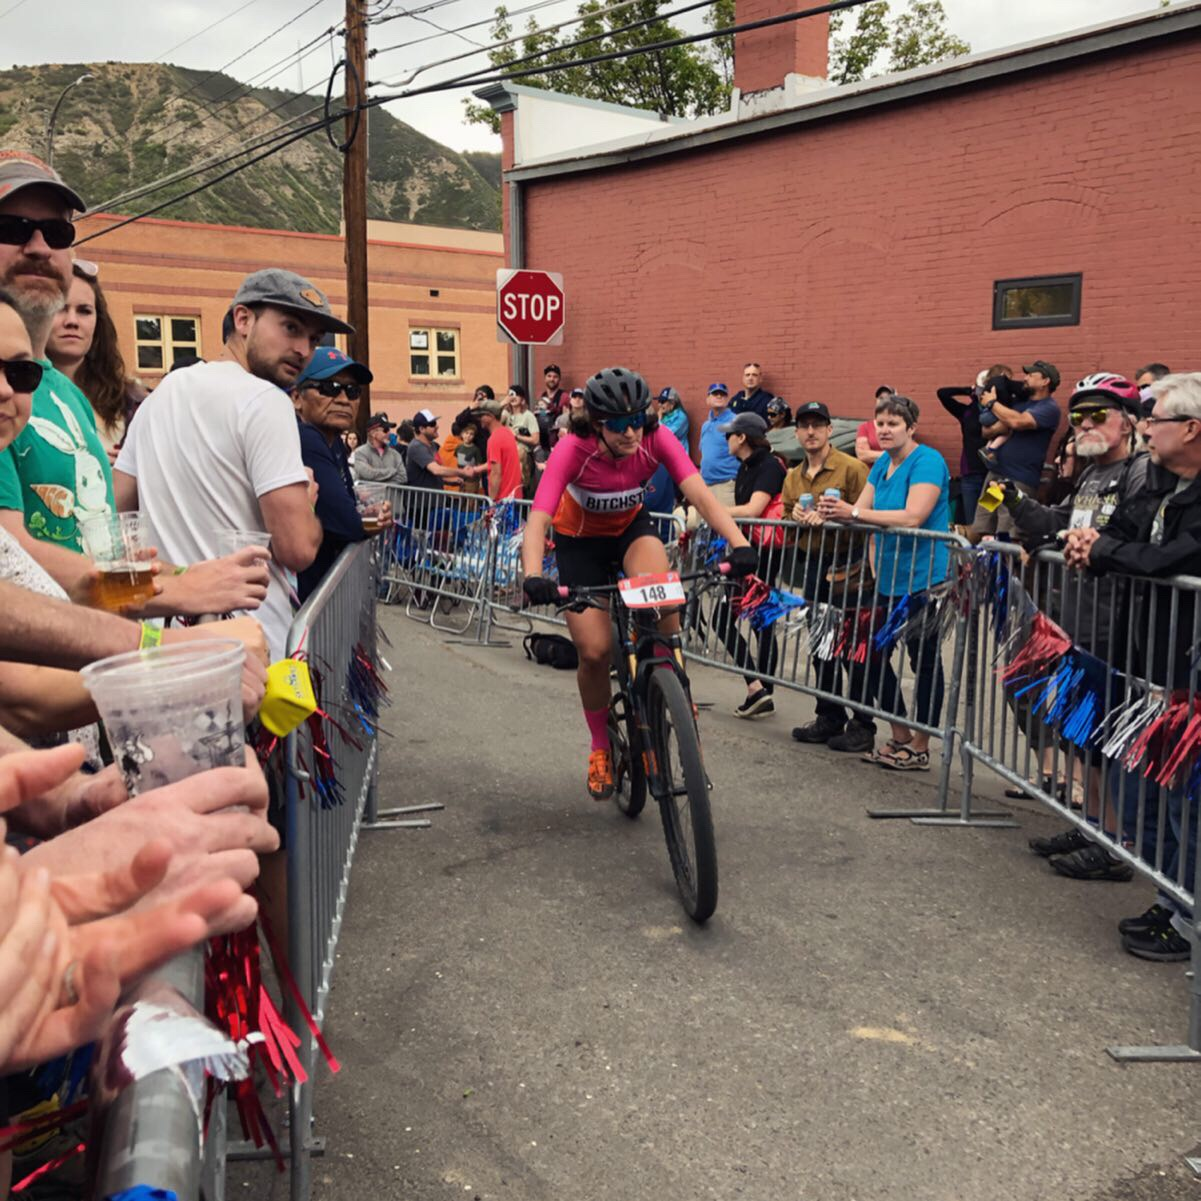 The Iron Horse Mountain Bike race goes through downtown and into a bar, taking beer hand-ups is just about mandatory.